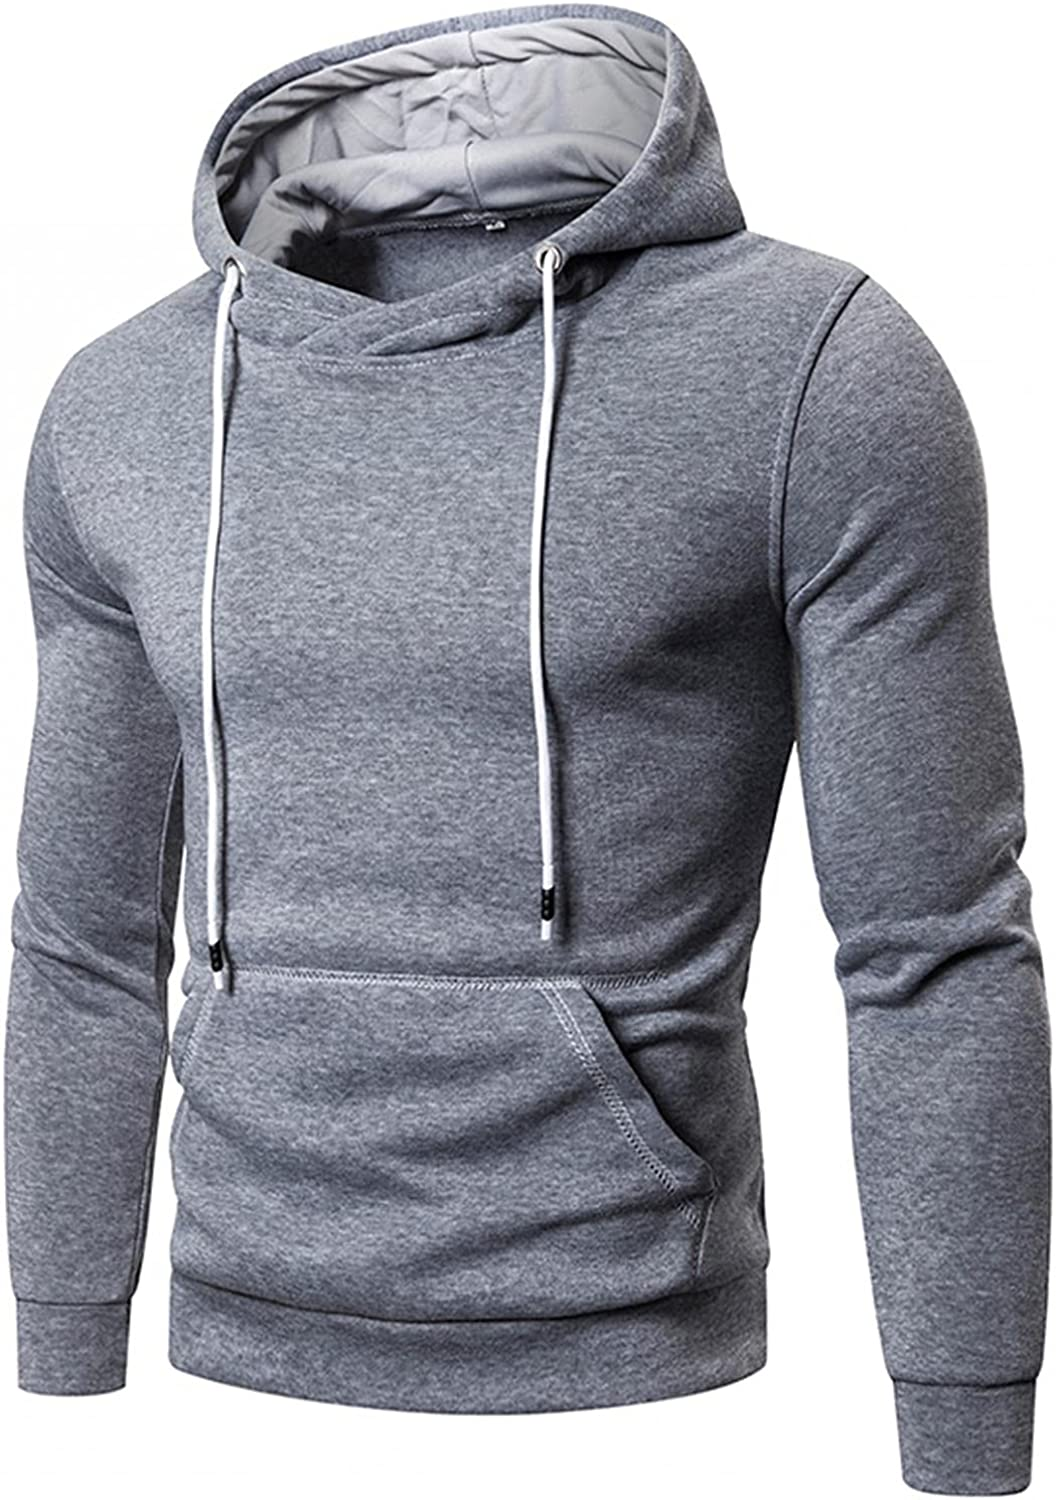 Aayomet Hoodies Sweatshirts for Men Solid Tops Long Sleeve Workout Athletic Hooded Pullover Blouses Sweaters